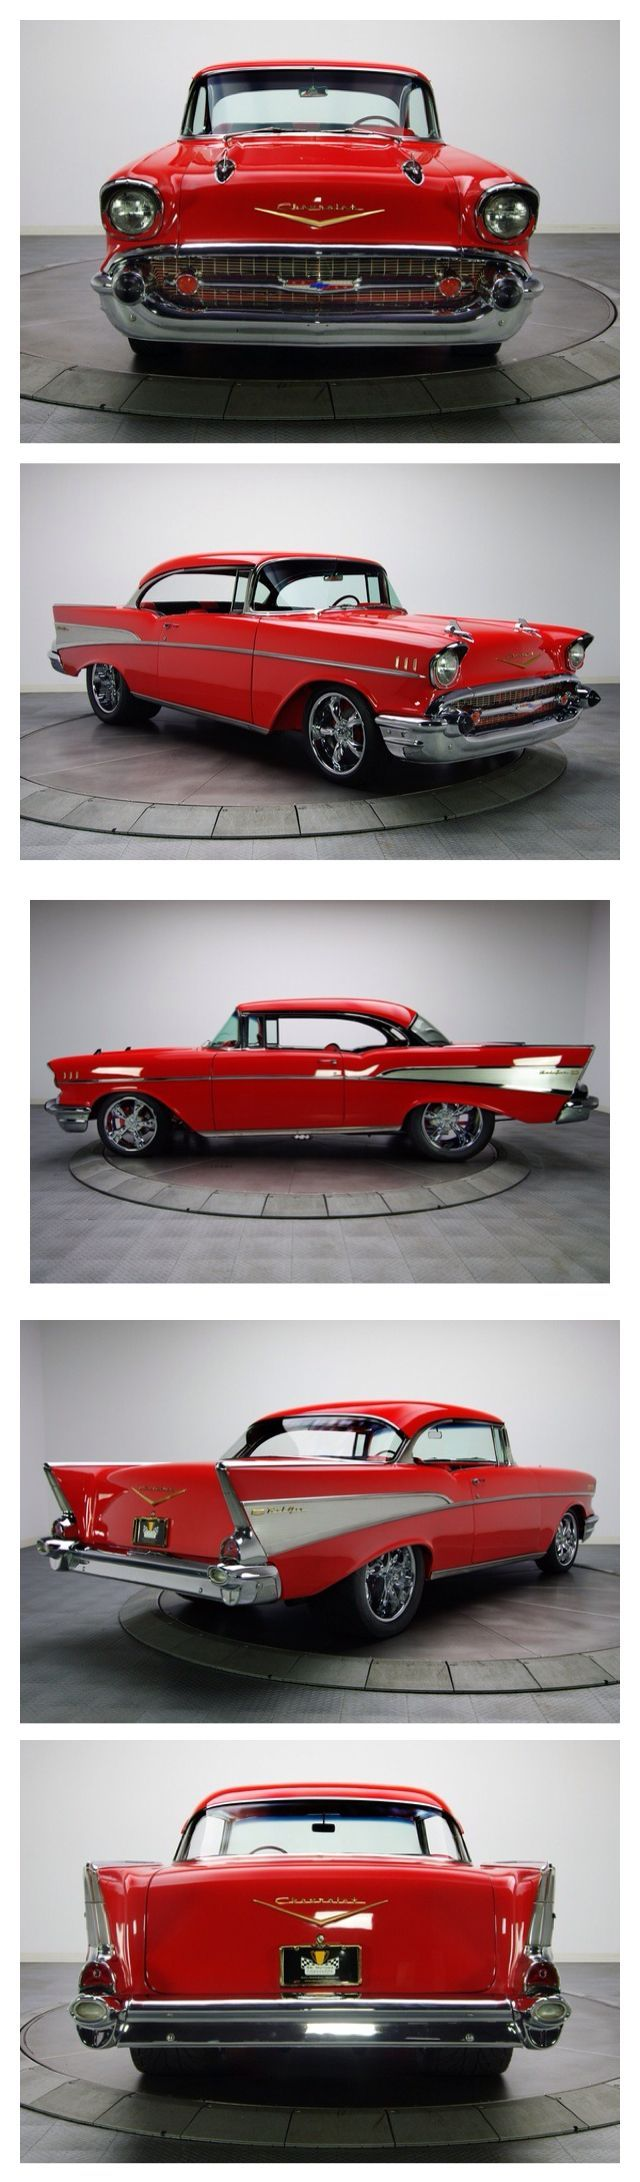 Chevrolet Bel Air 1957. – Luxury Brand Car Information And Promotion Blog